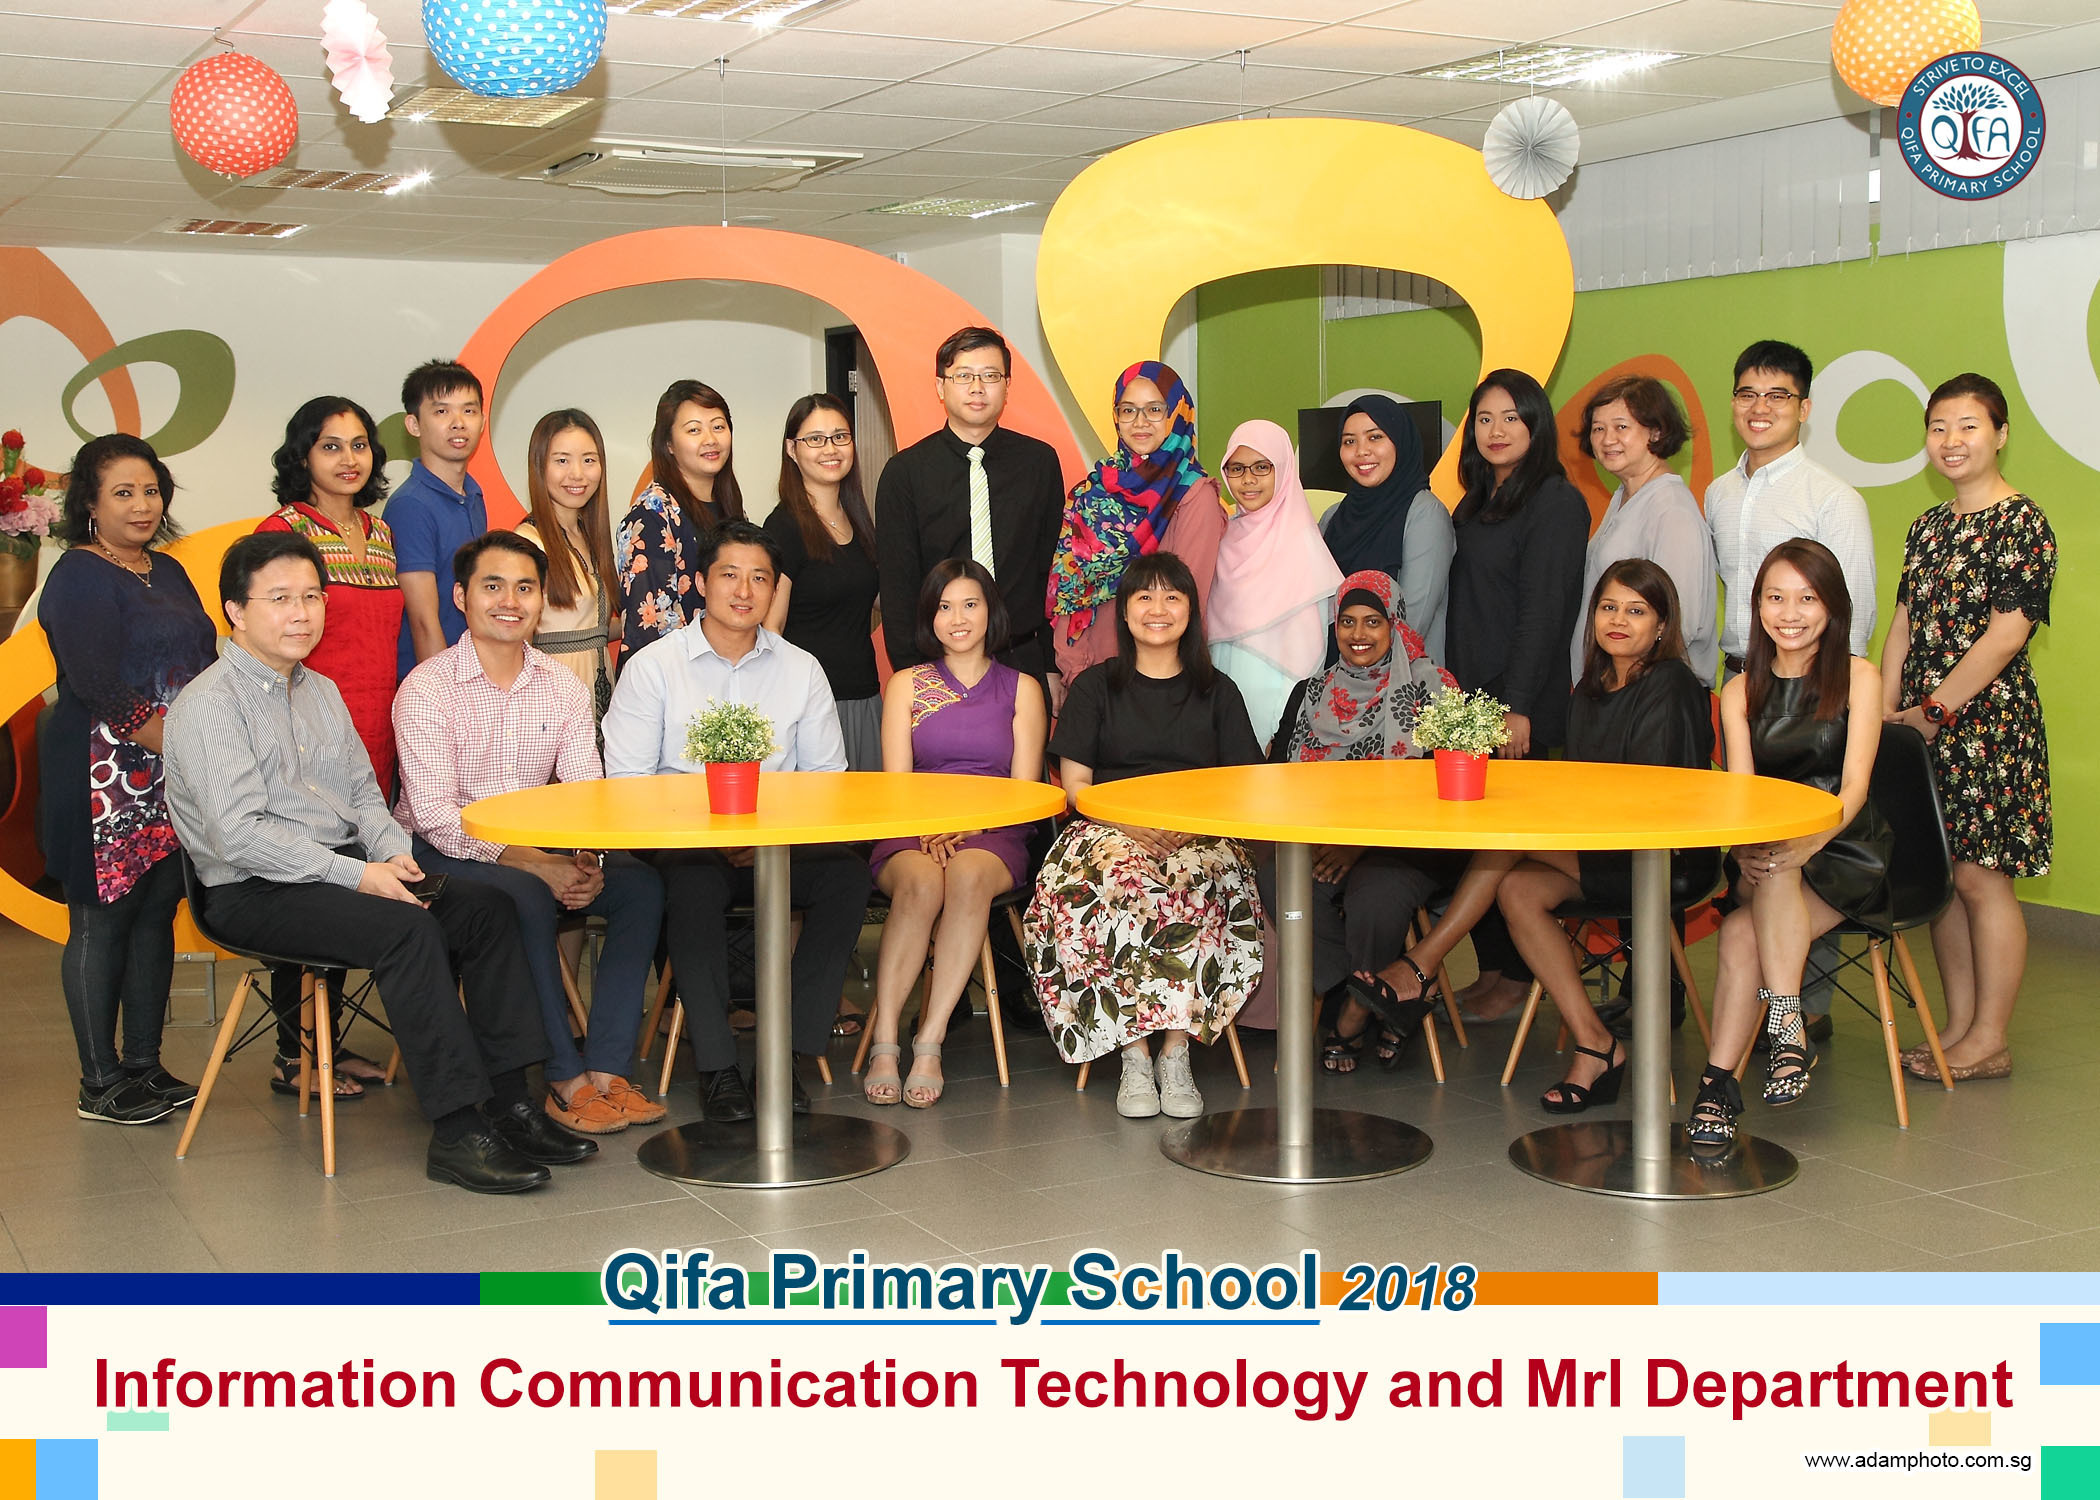 information communication technology and mrl department 2.jpg